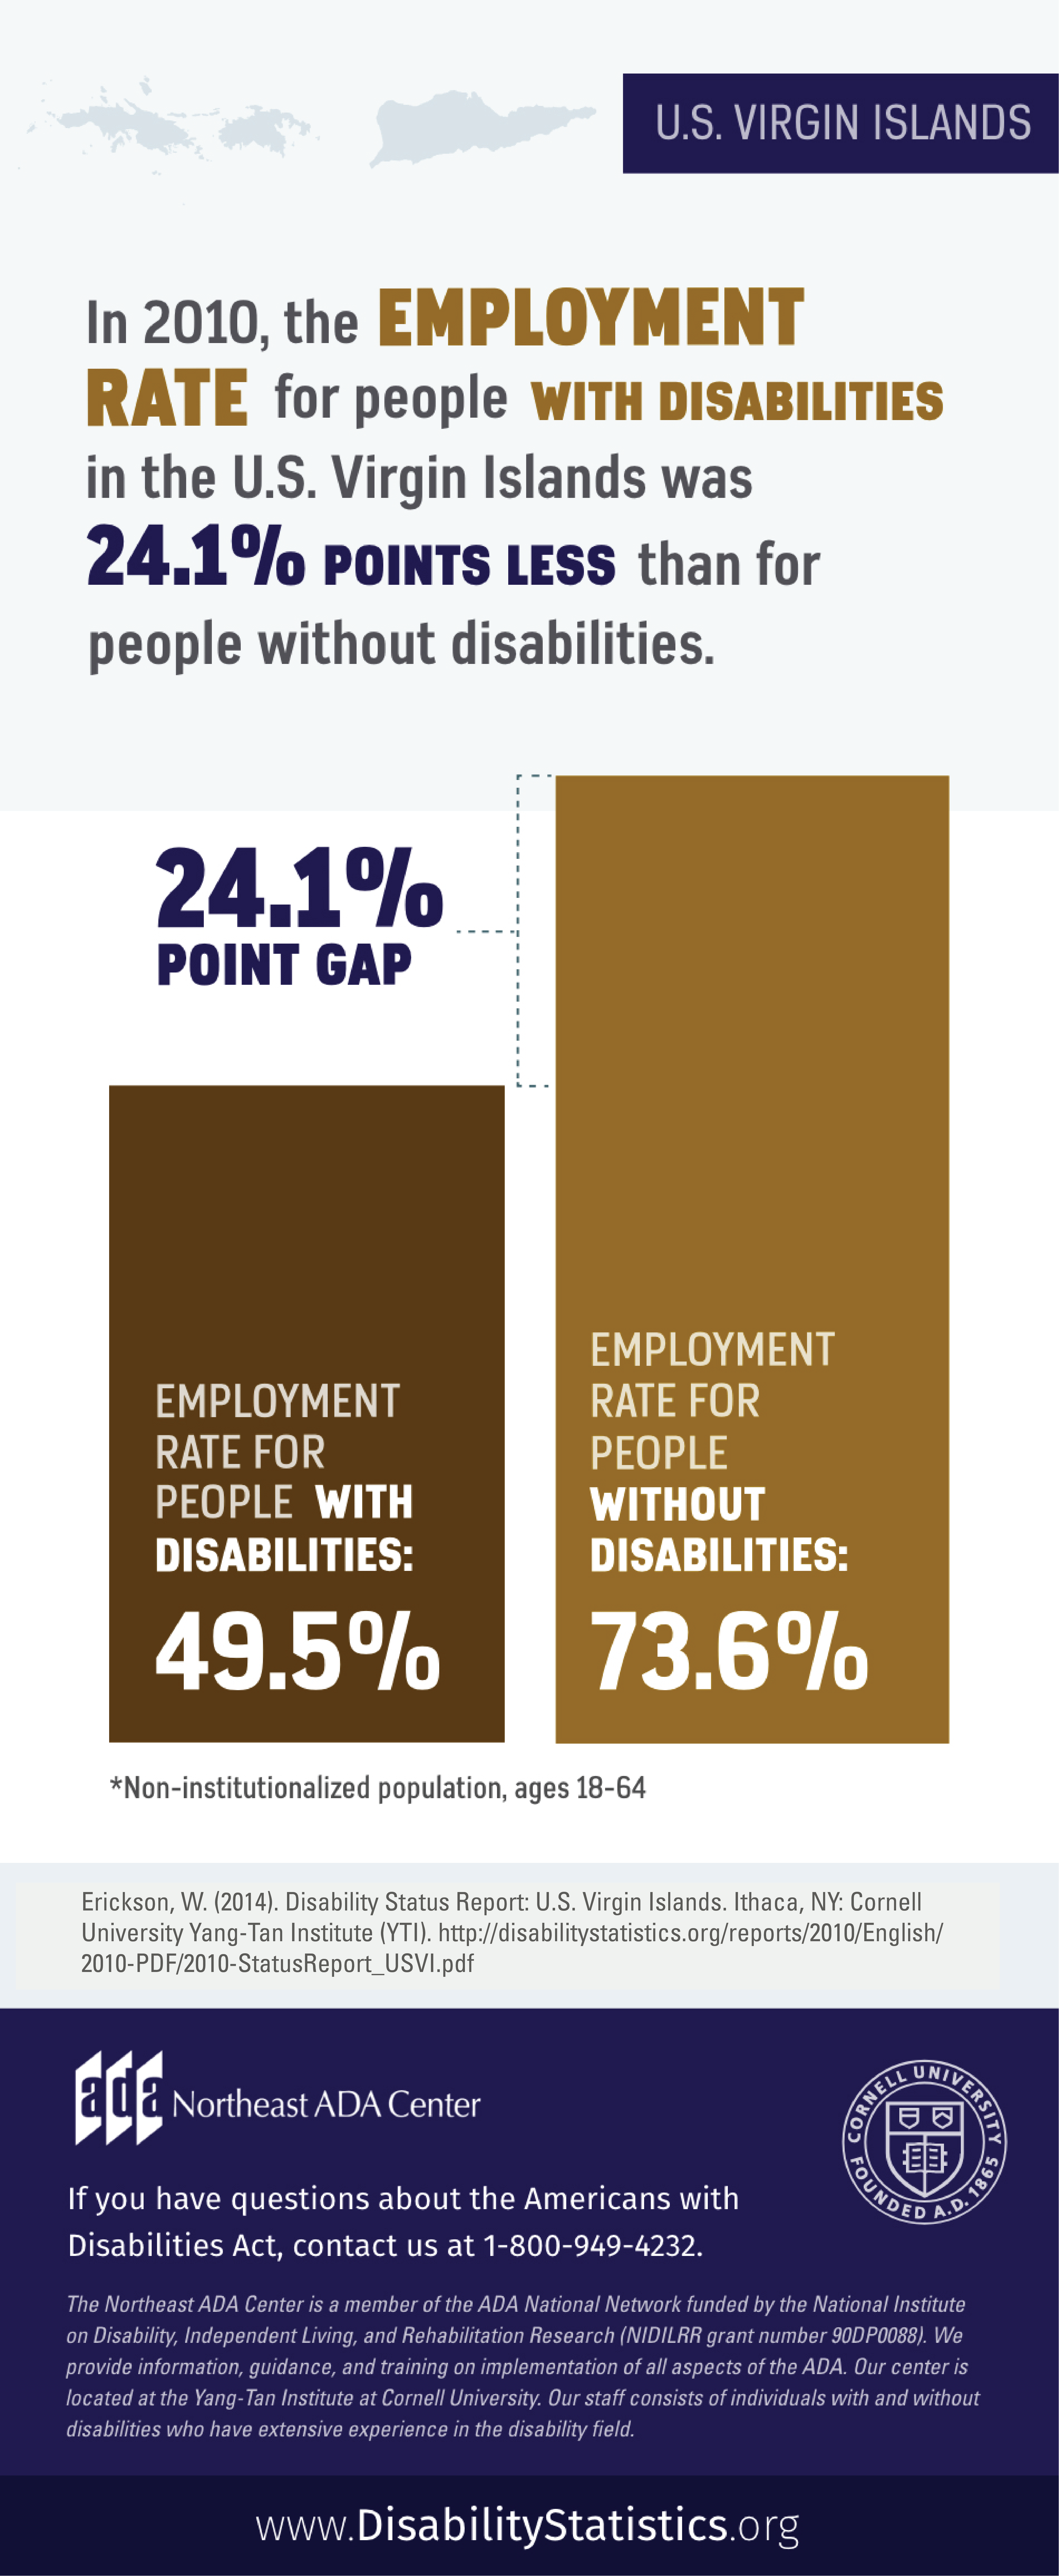 Infographic featuring text on top of an outline of the US Virgin Islands along with a bar graph showing employment rates for people with disabilities and people without disabilities in the Virgin Islands: